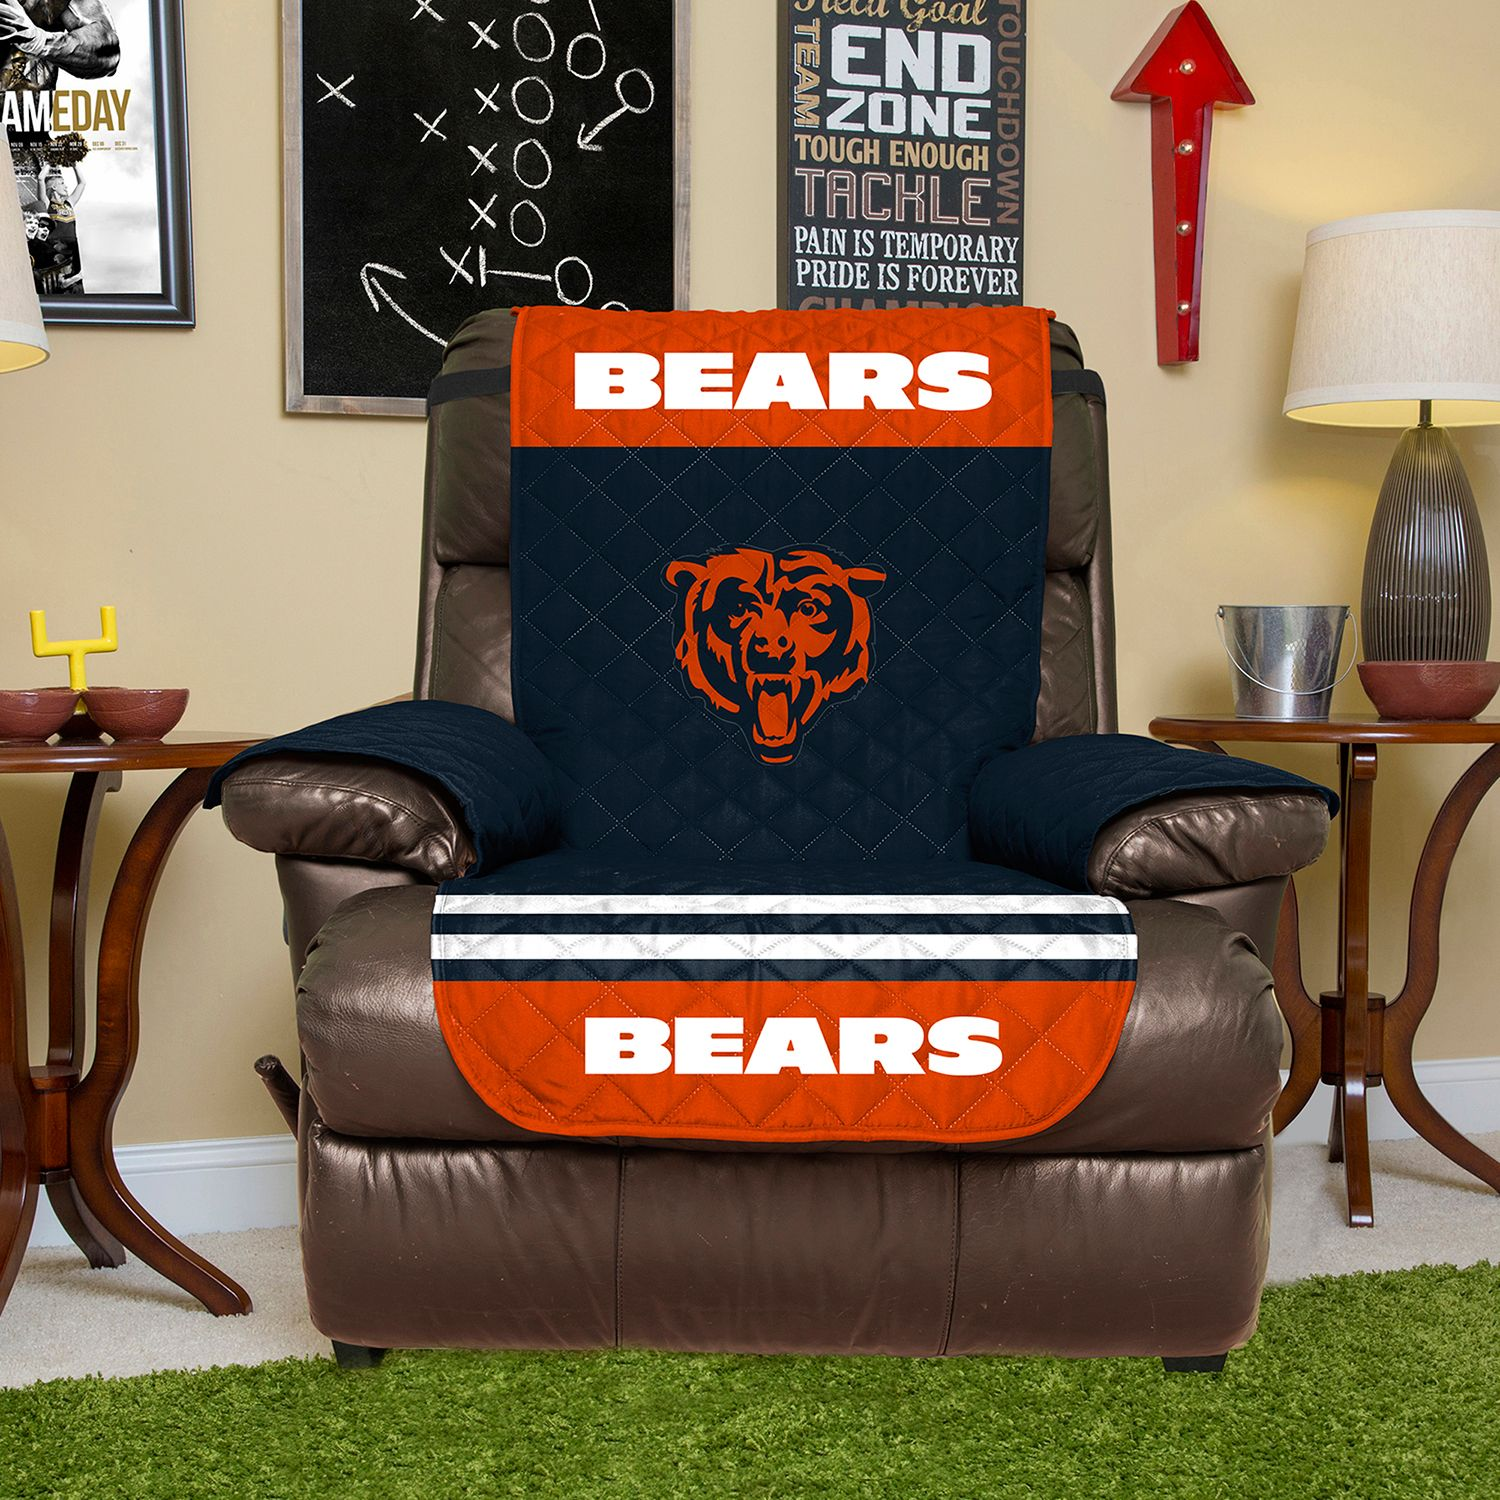 & Chicago Bears Quilted Recliner Chair Cover